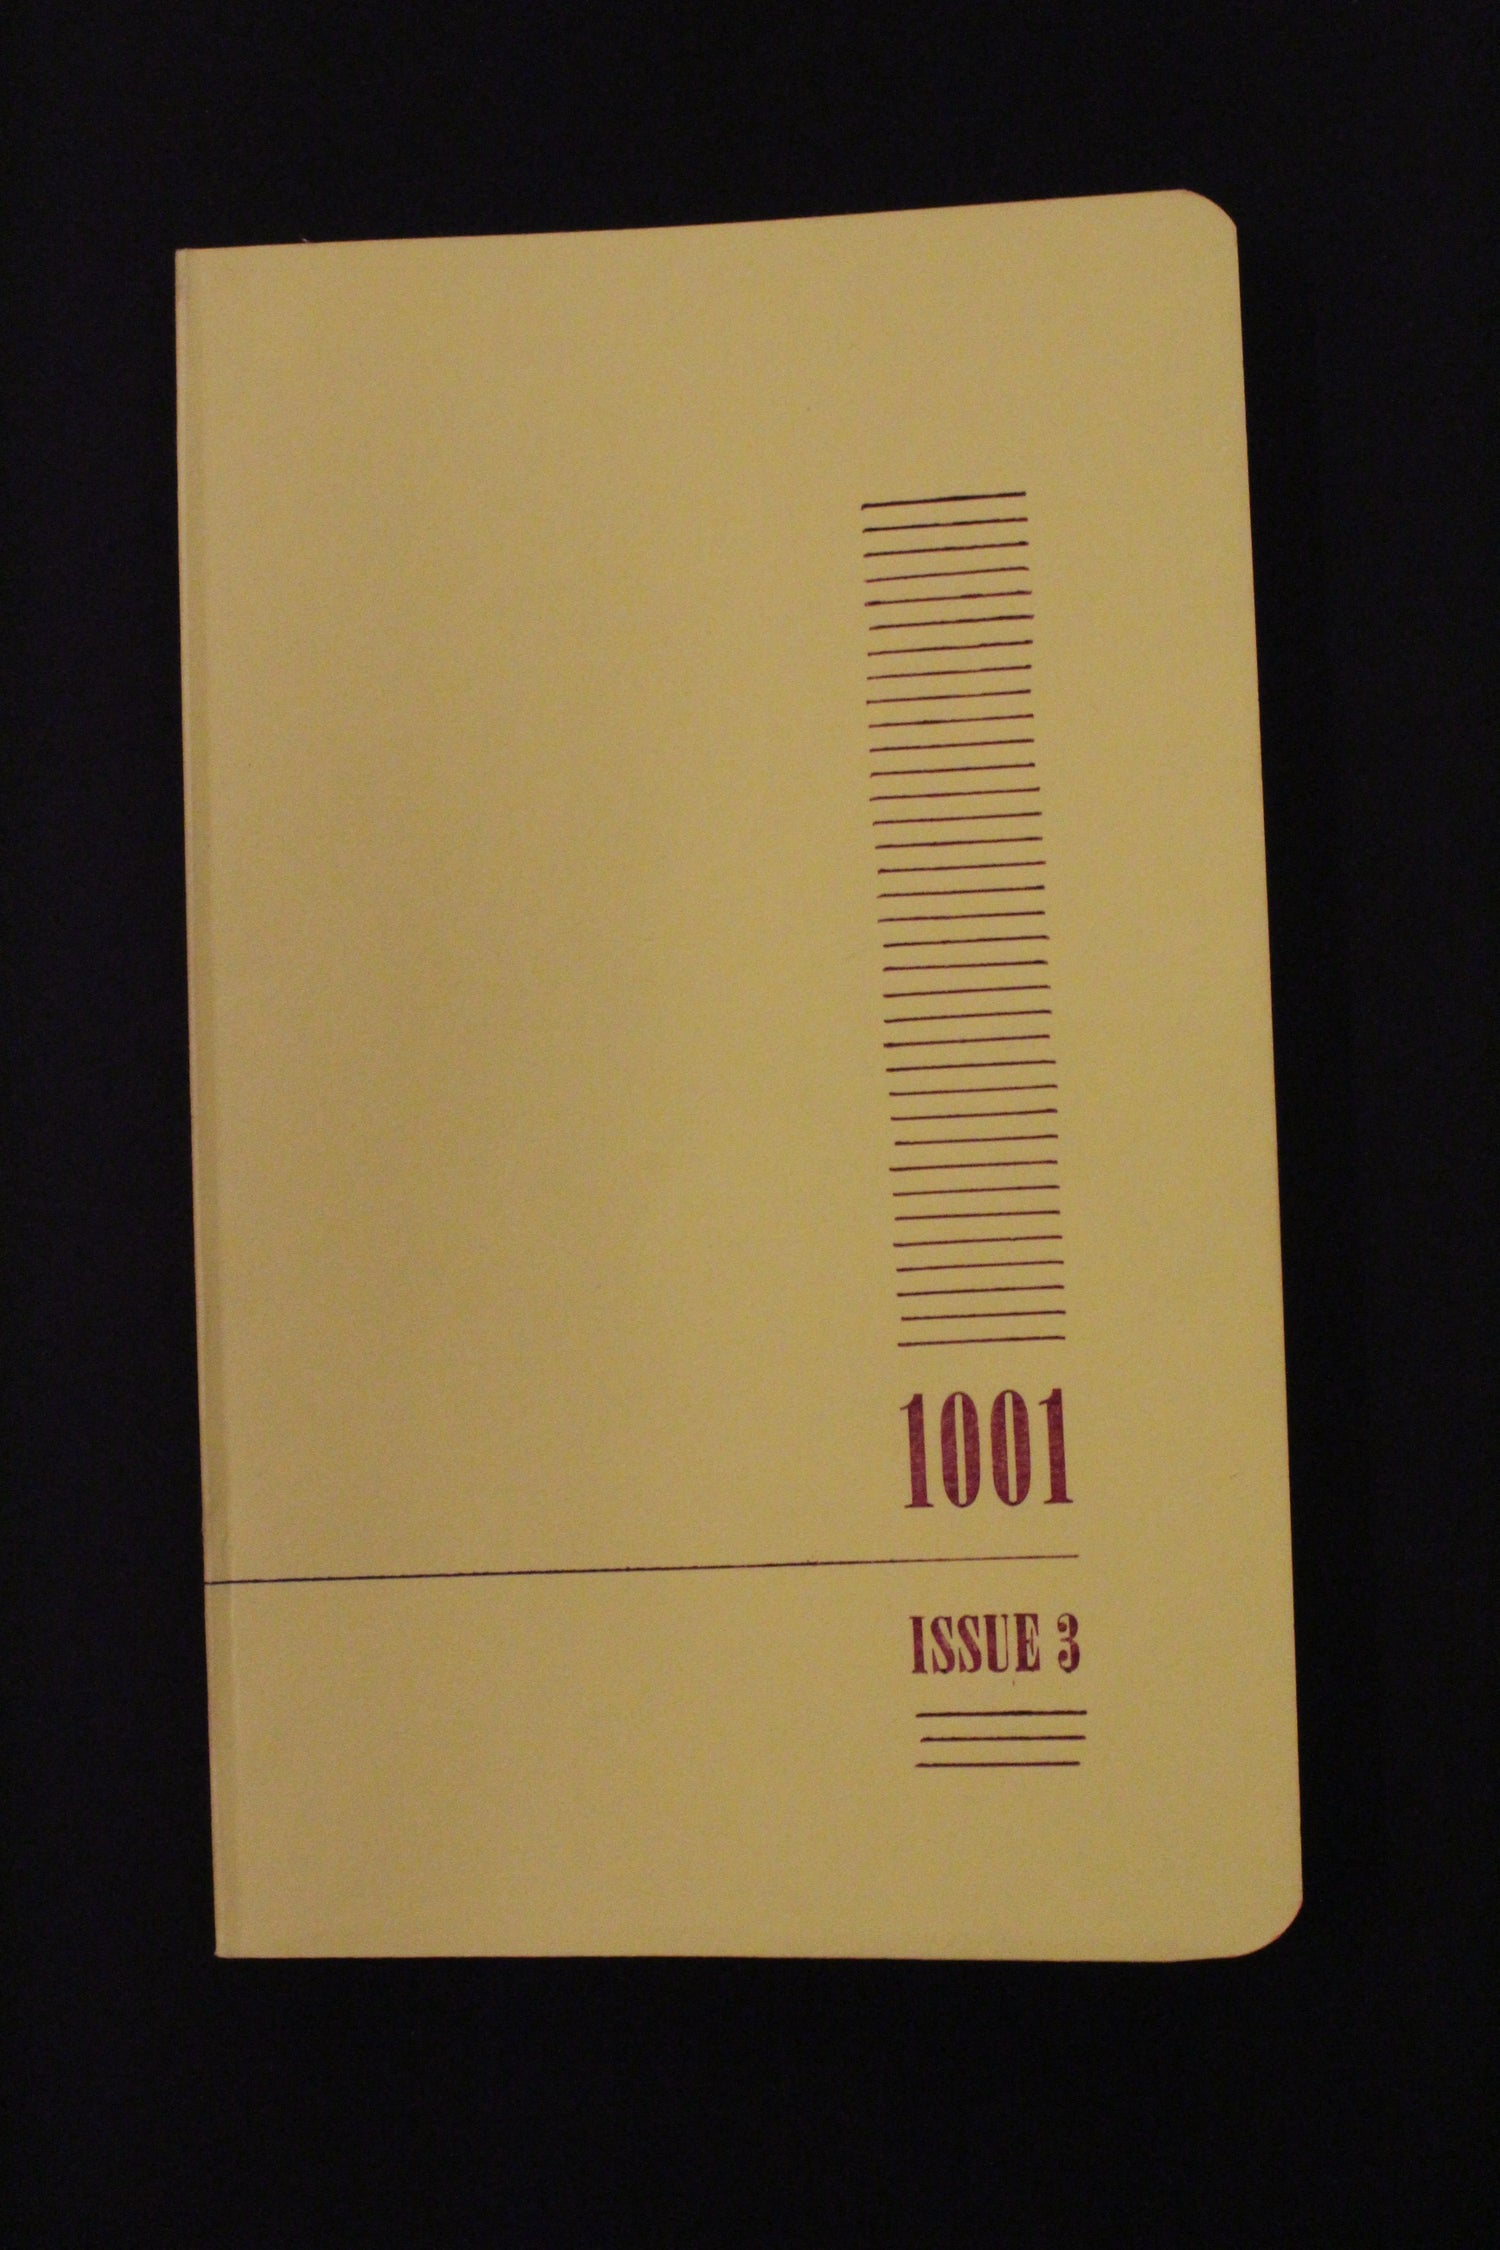 Image of 1001 Journal Issue 3